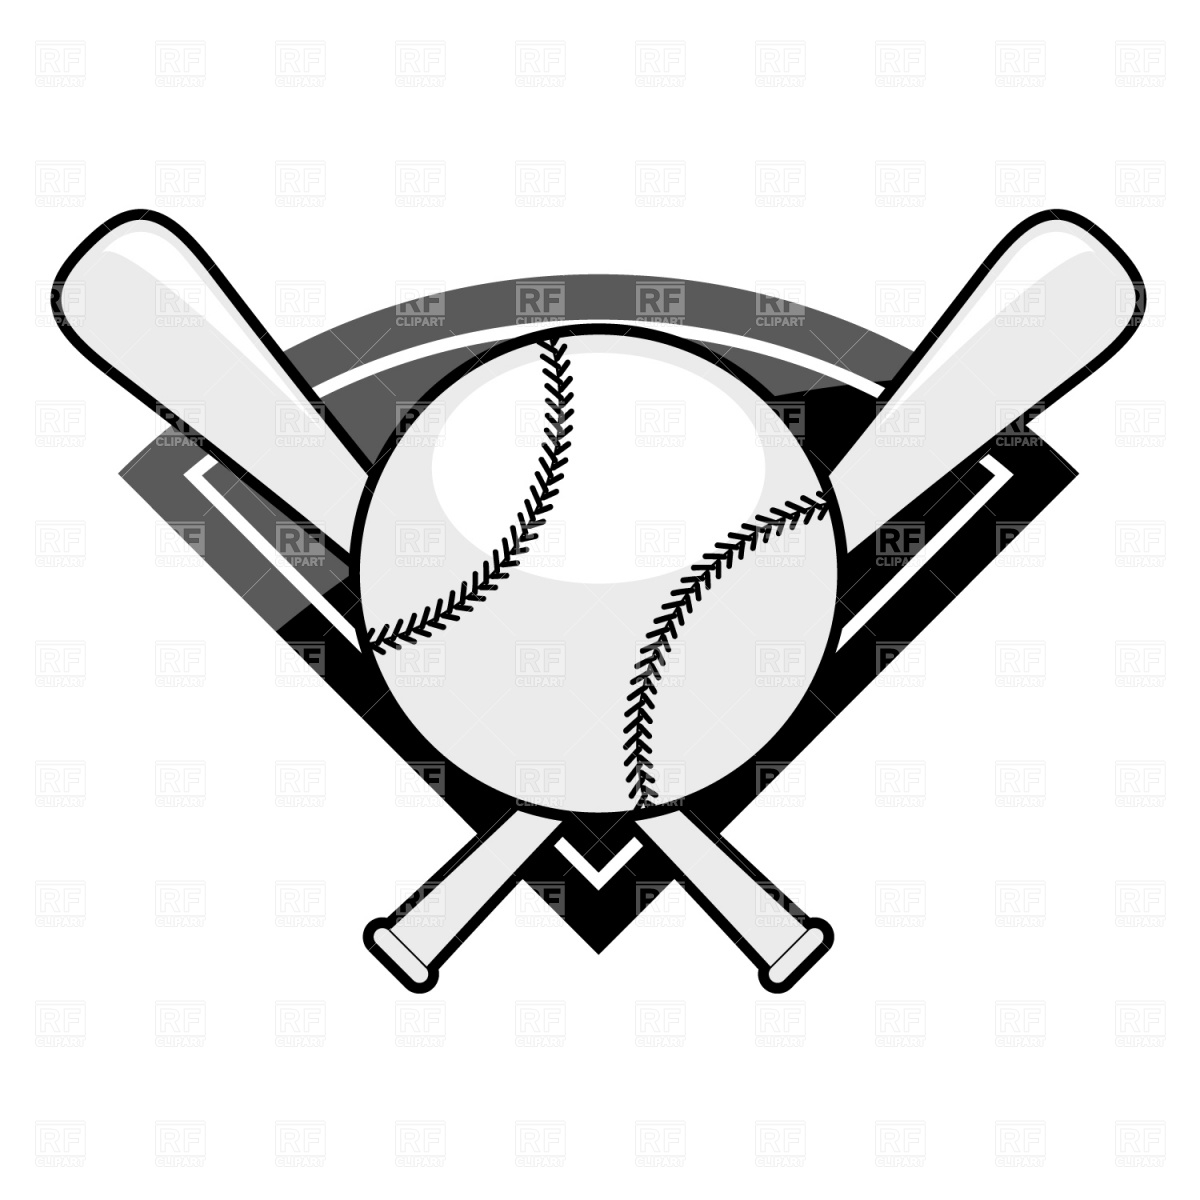 1200x1200 Bat Black And White Crossed Baseball Bats Clipart Black And White